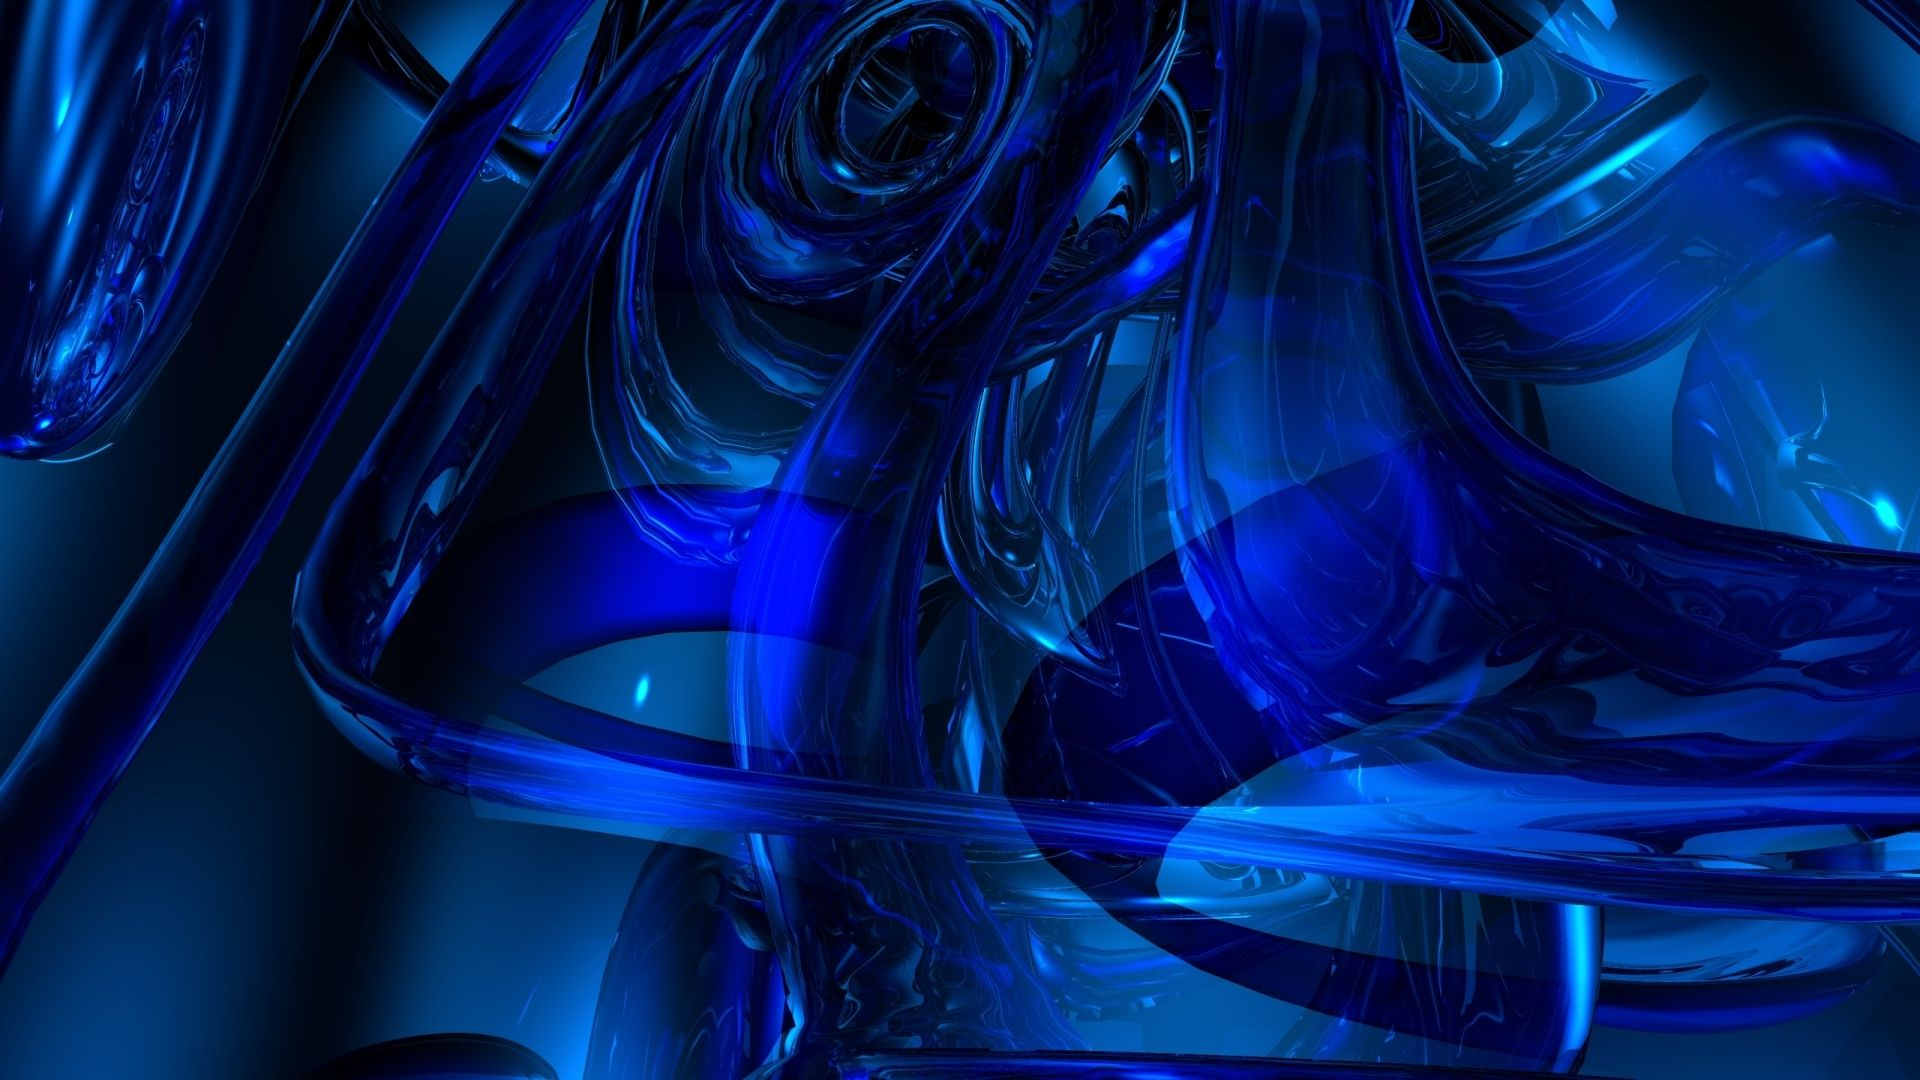 Cool Blue Gaming Wallpapers Top Free Cool Blue Gaming Backgrounds Wallpaperaccess